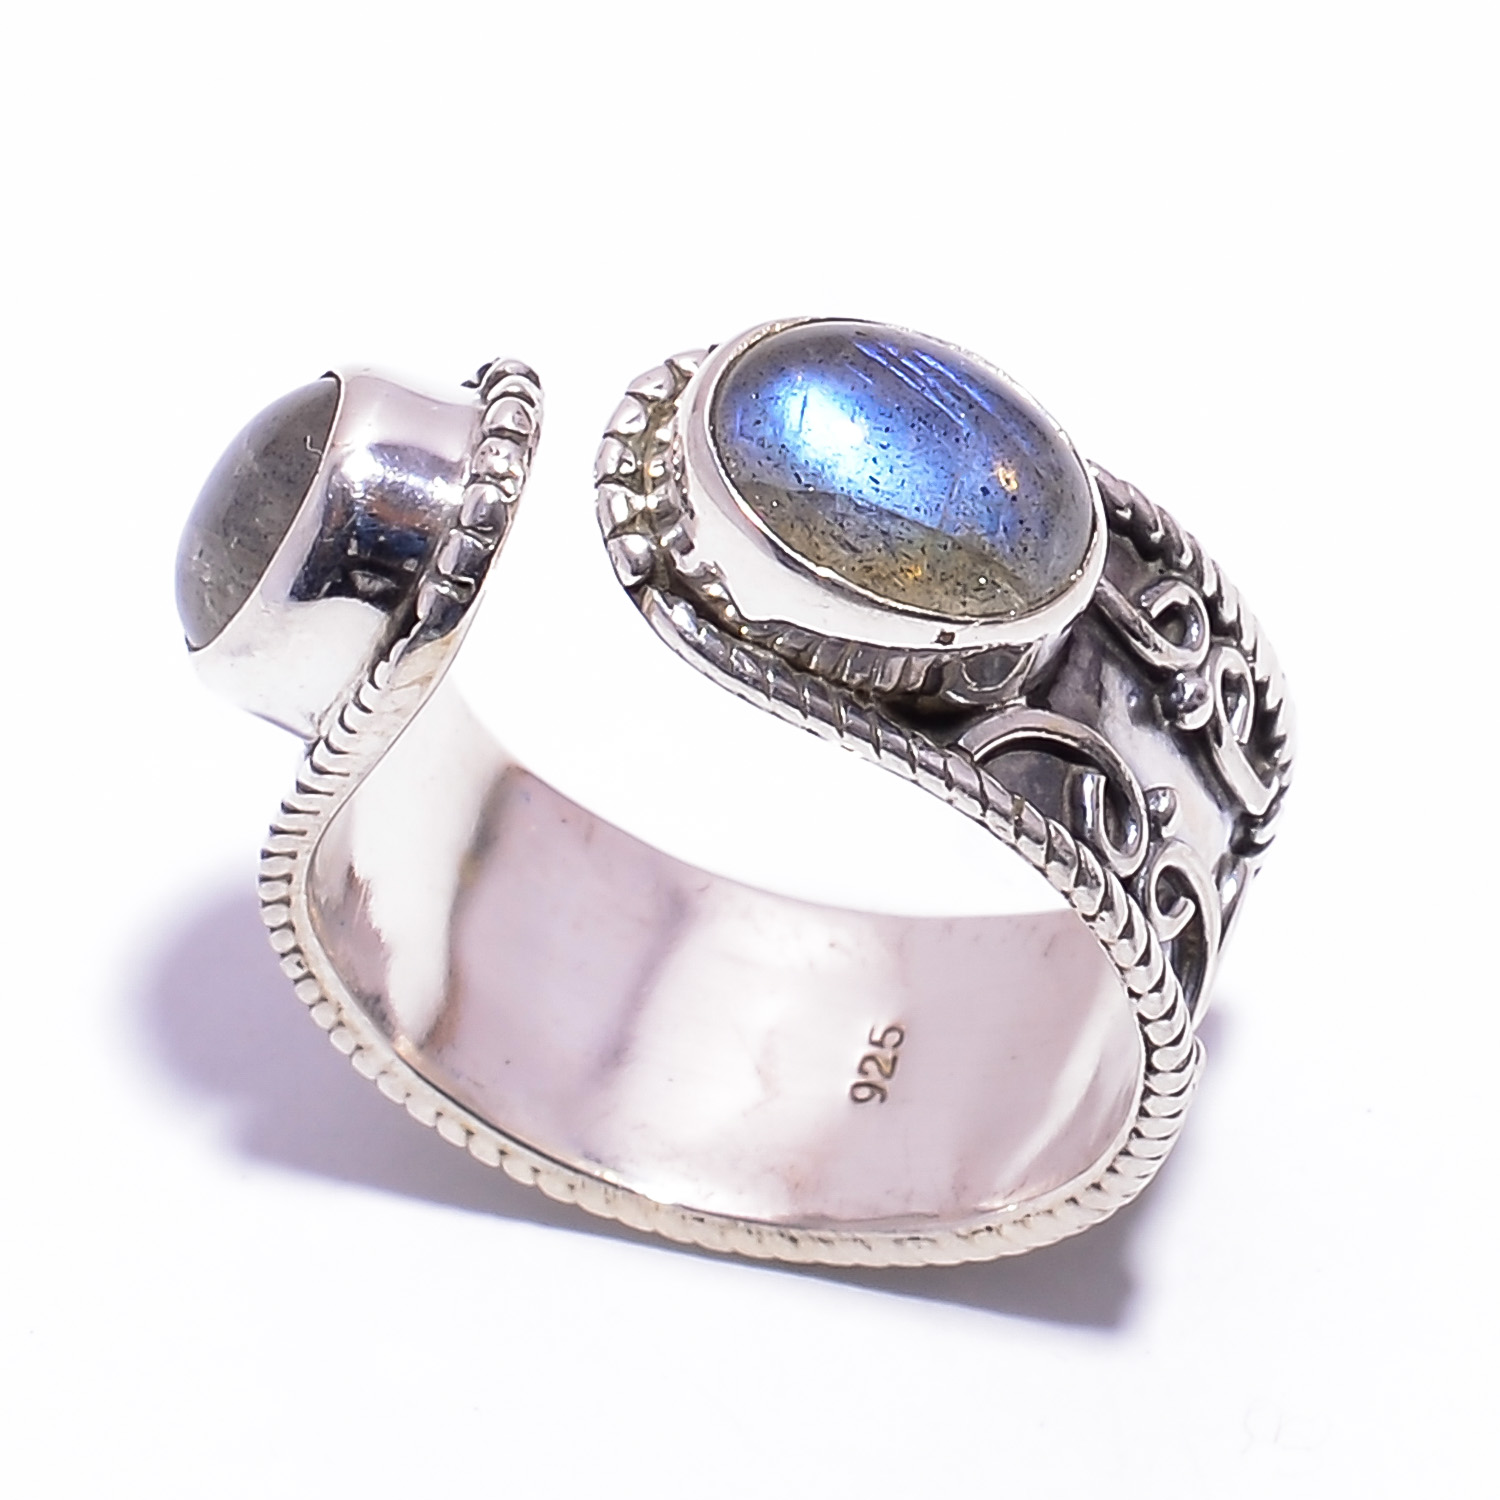 f057c38a0 Natural Rainbow Moonstone 925 Sterling Silver Ring Size US 8.25